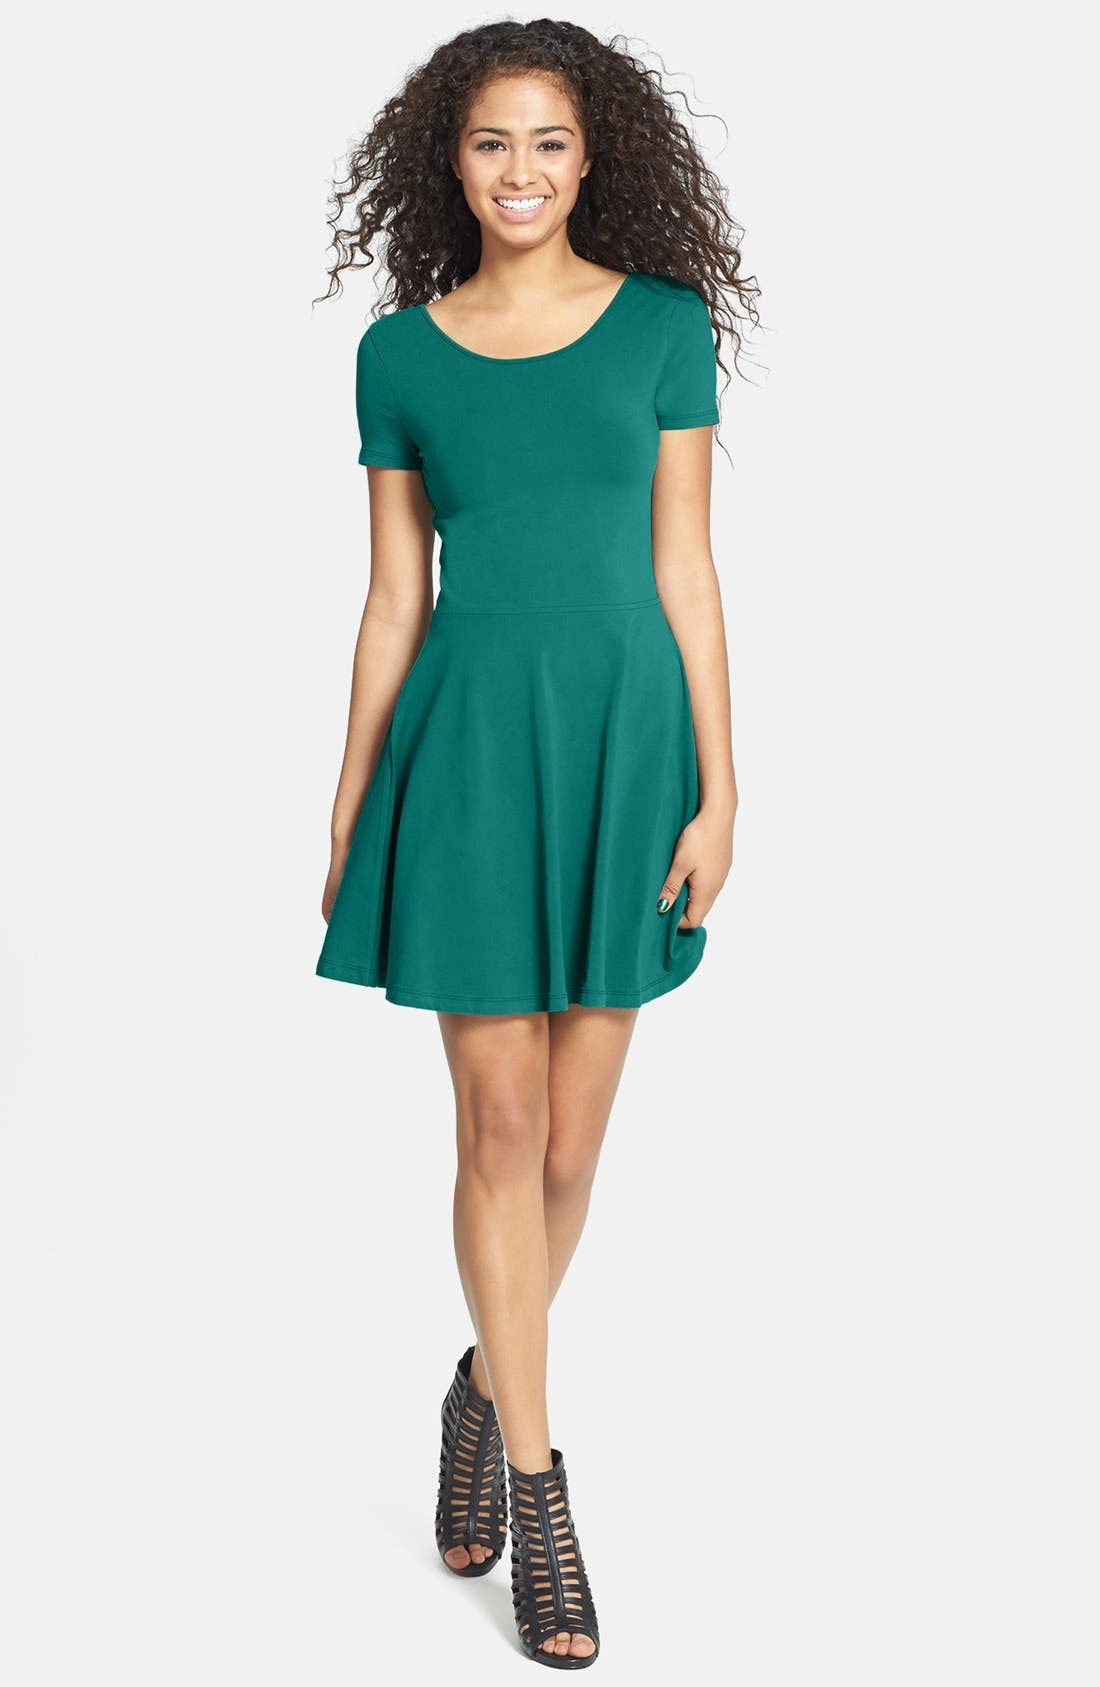 Alternate Image 1 Selected - BP. Scoop Back Skater Dress (Juniors)